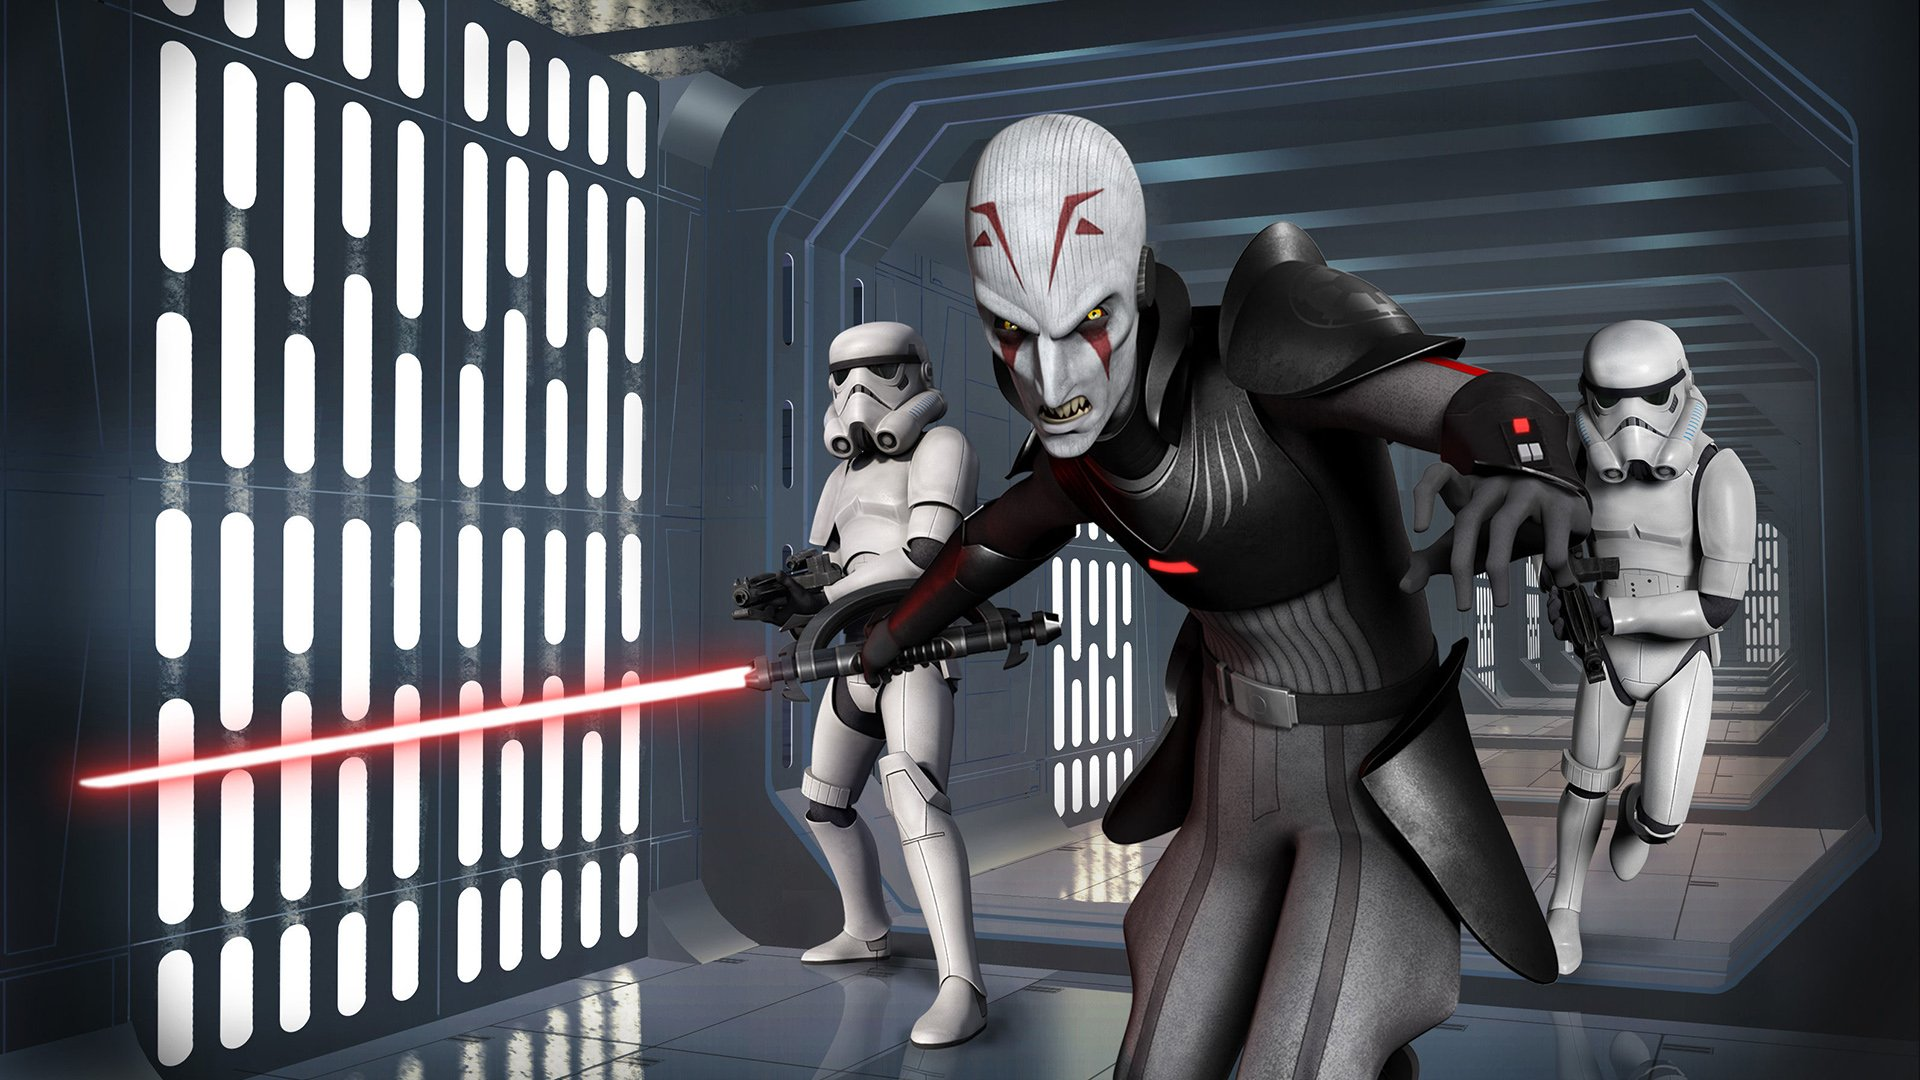 TV Show - Star Wars Rebels  The Inquisitor Wallpaper